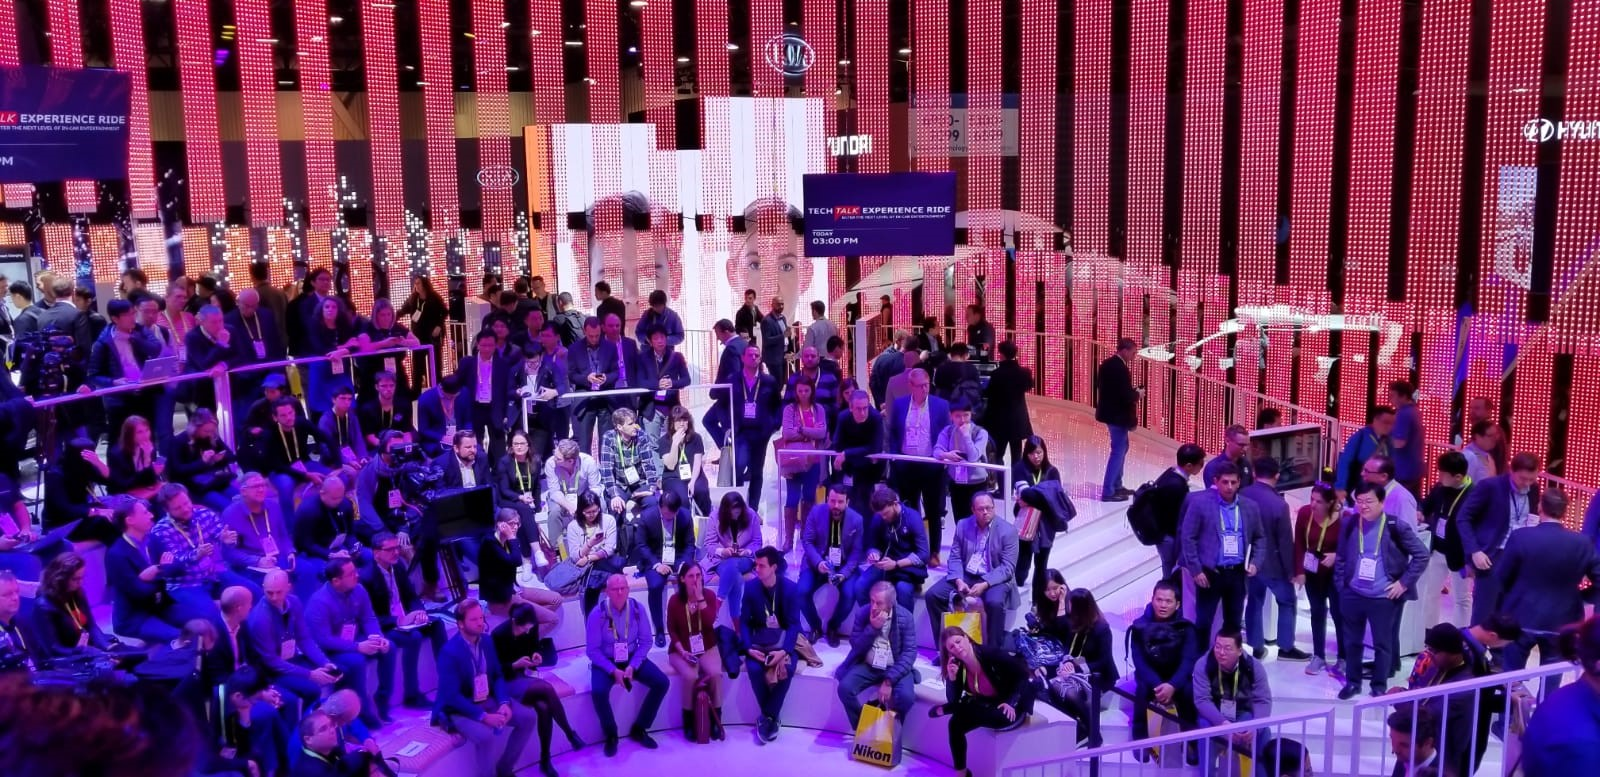 Google's CES showcase featured its own mini amusement park. The company also announced a series of new automotive features for its Google Voice Assistant.